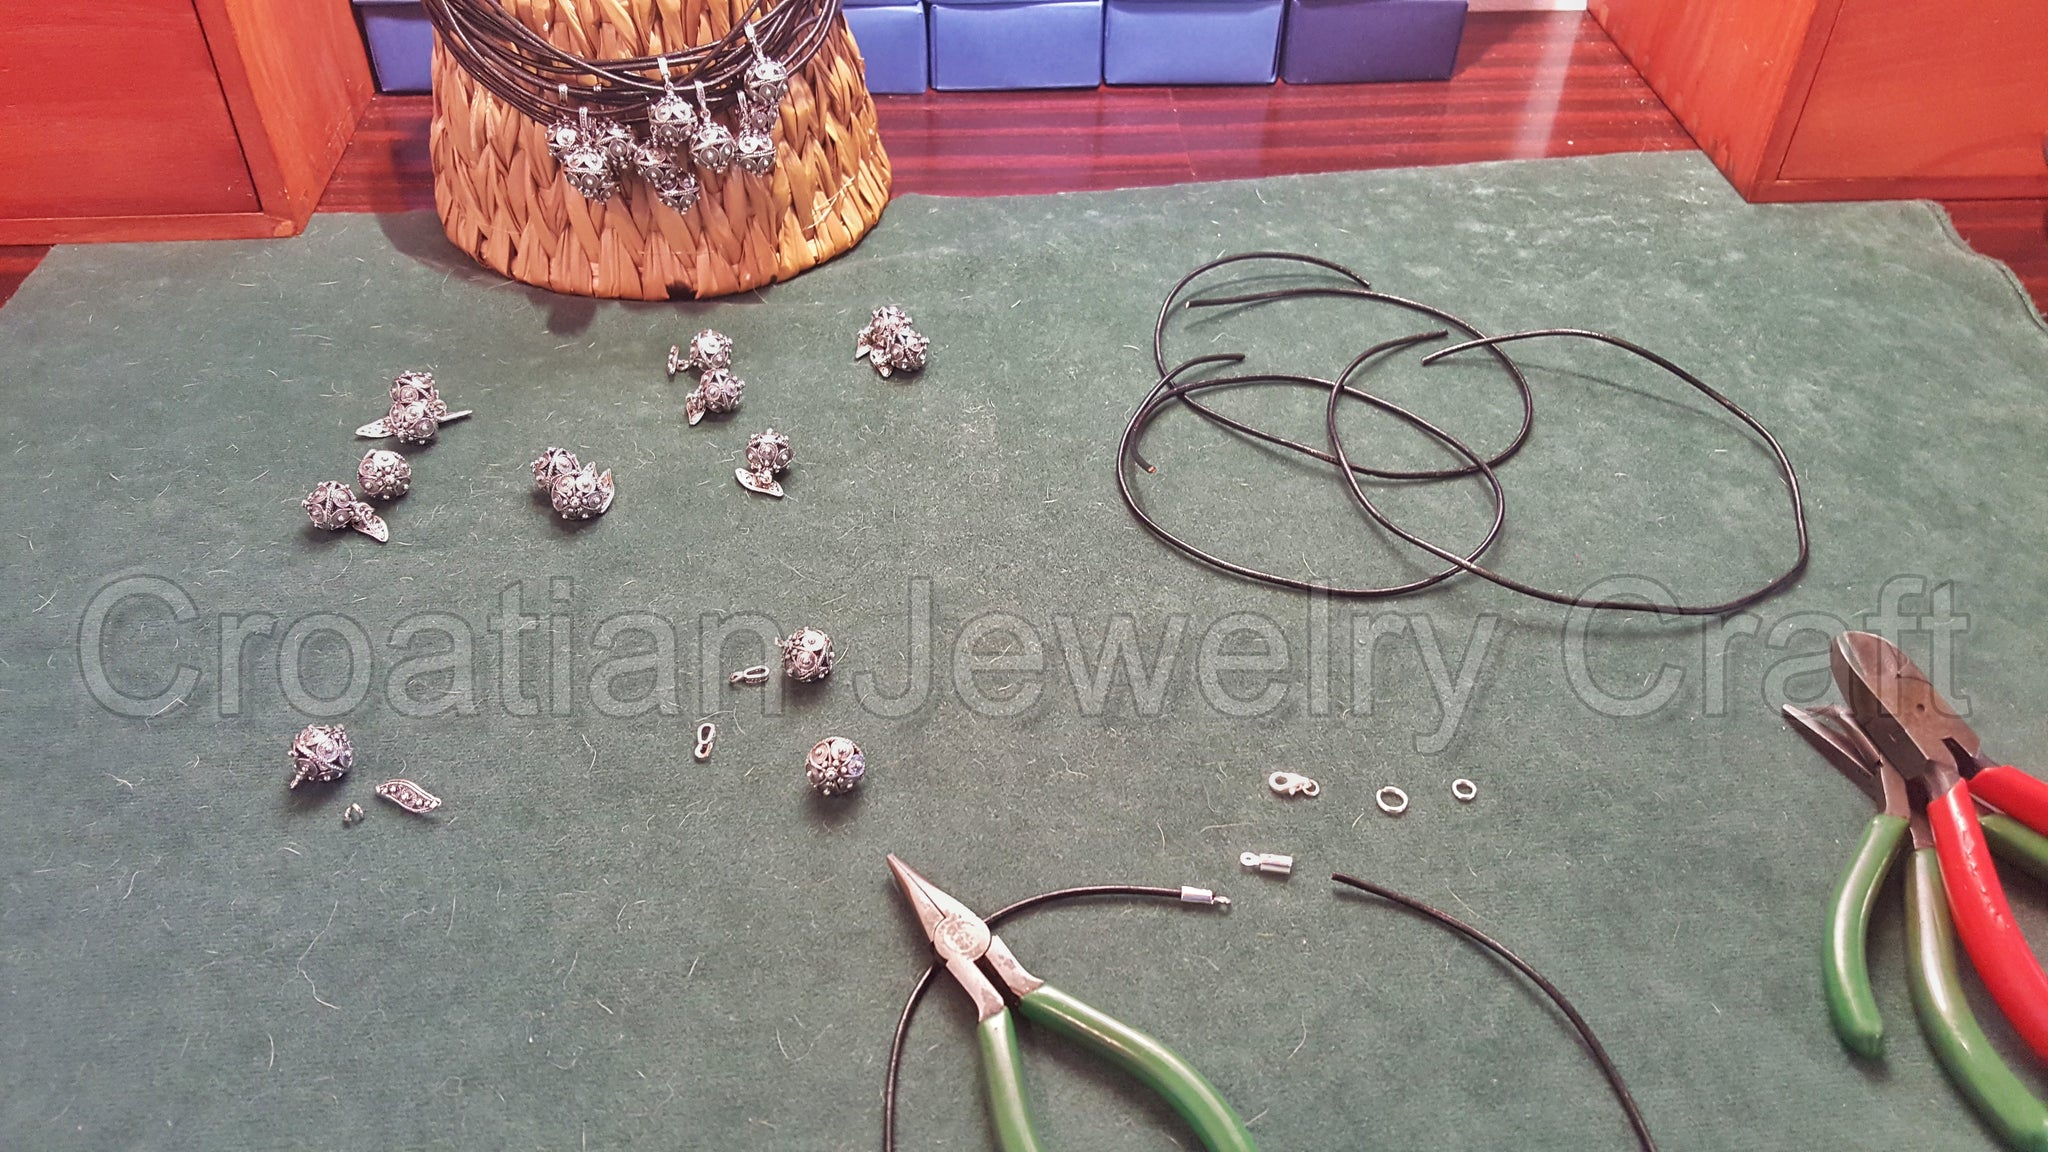 Finishing work on order for filigree pendant necklaces & cuff-links